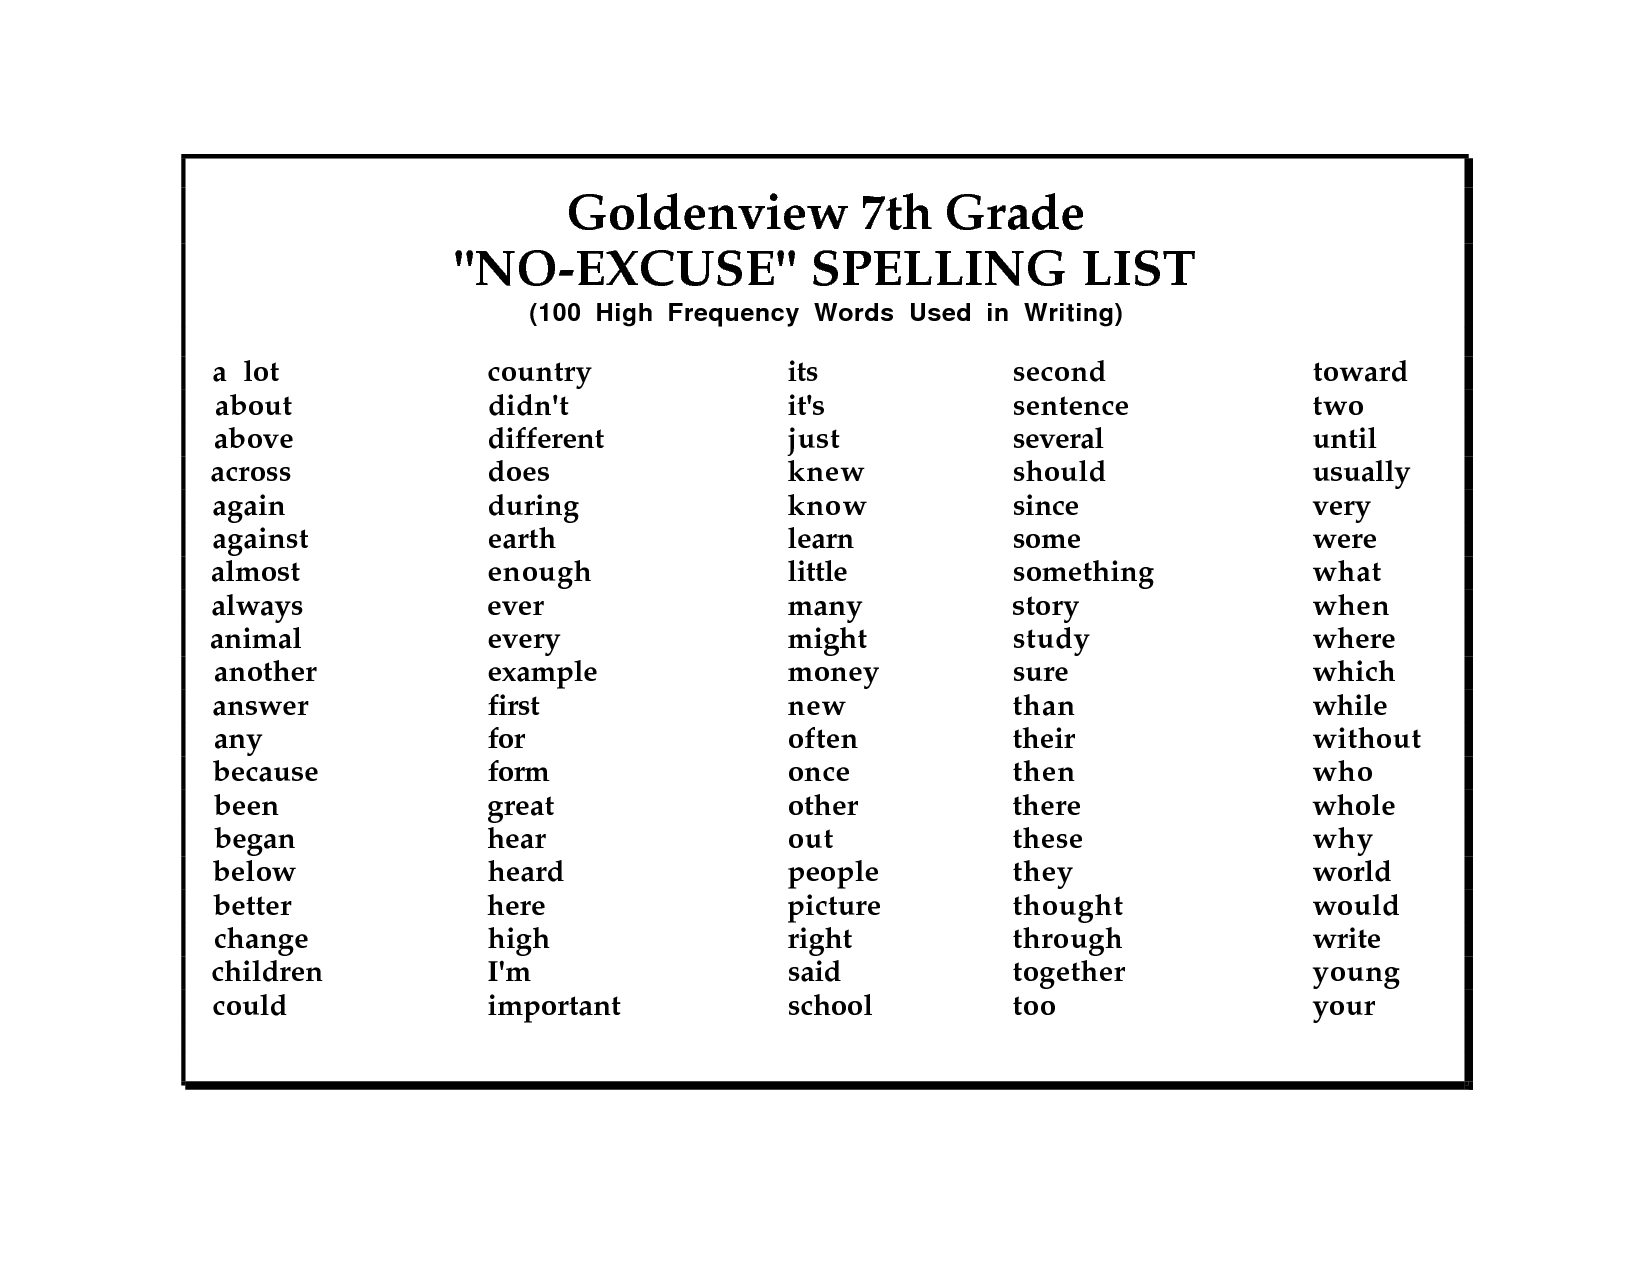 8th Grade Sight Words List 13 Best Images Of Vocabulary Worksheets For 3rd Grade 3rd Grade Language Spelling Words List Spelling Words Spelling Worksheets [ 1275 x 1650 Pixel ]